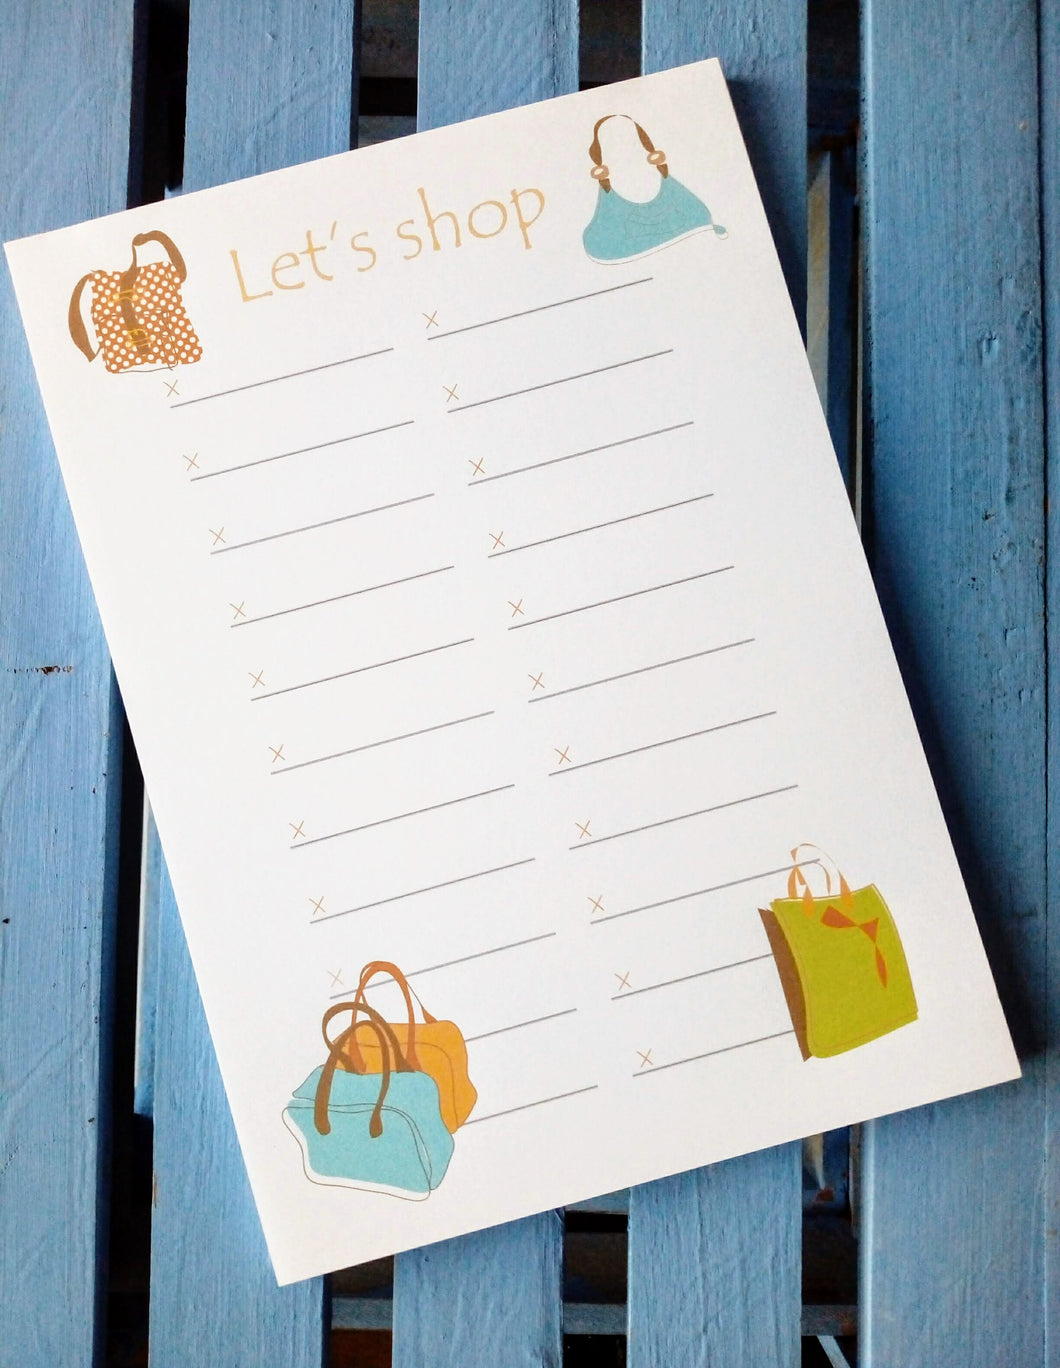 Let's Shop Notepad